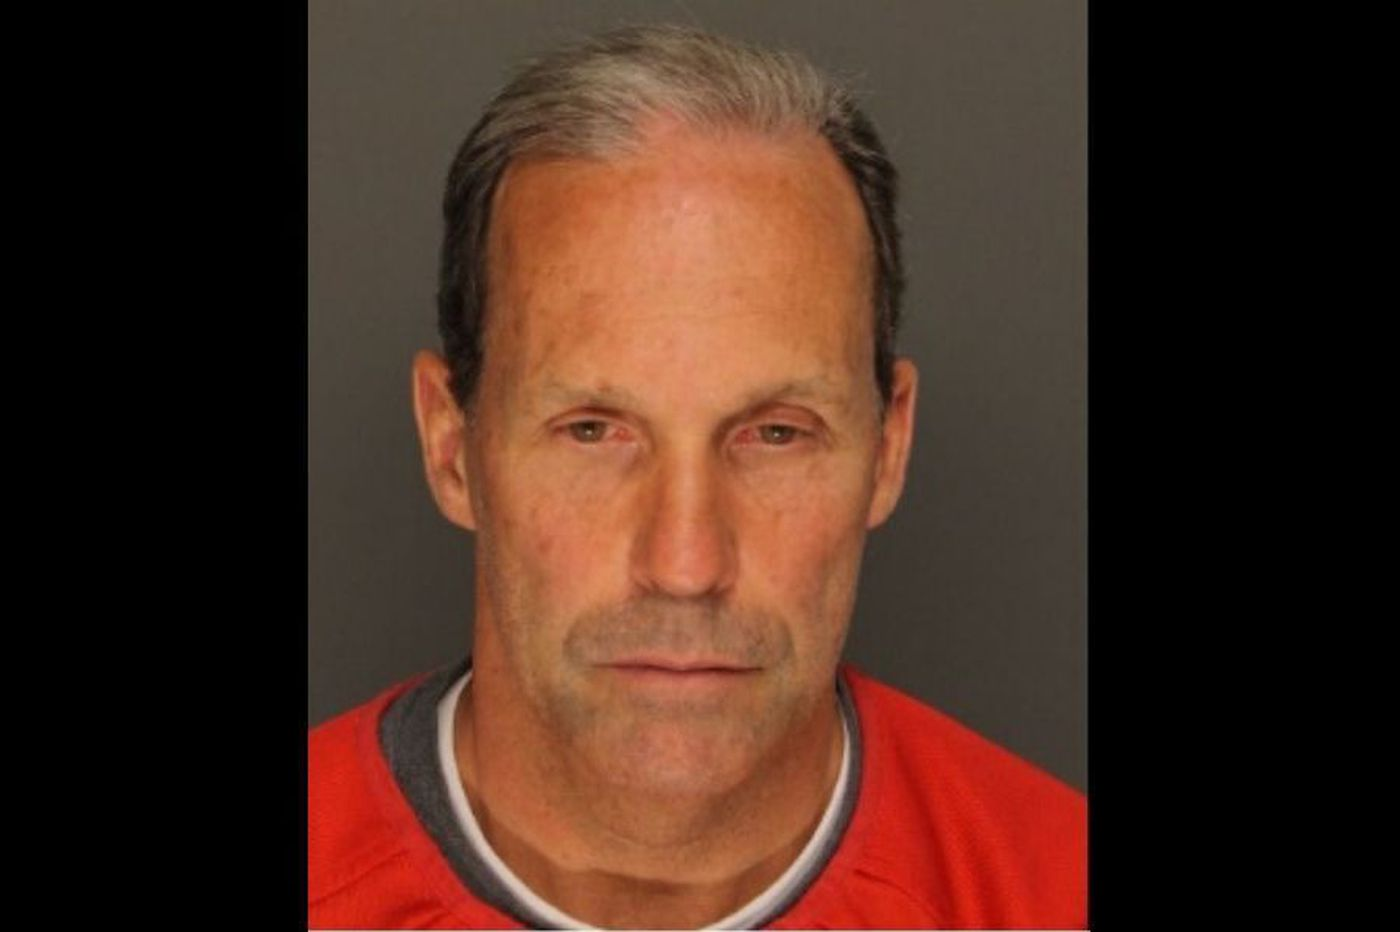 Chester County high school teacher charged with sexually assaulting student